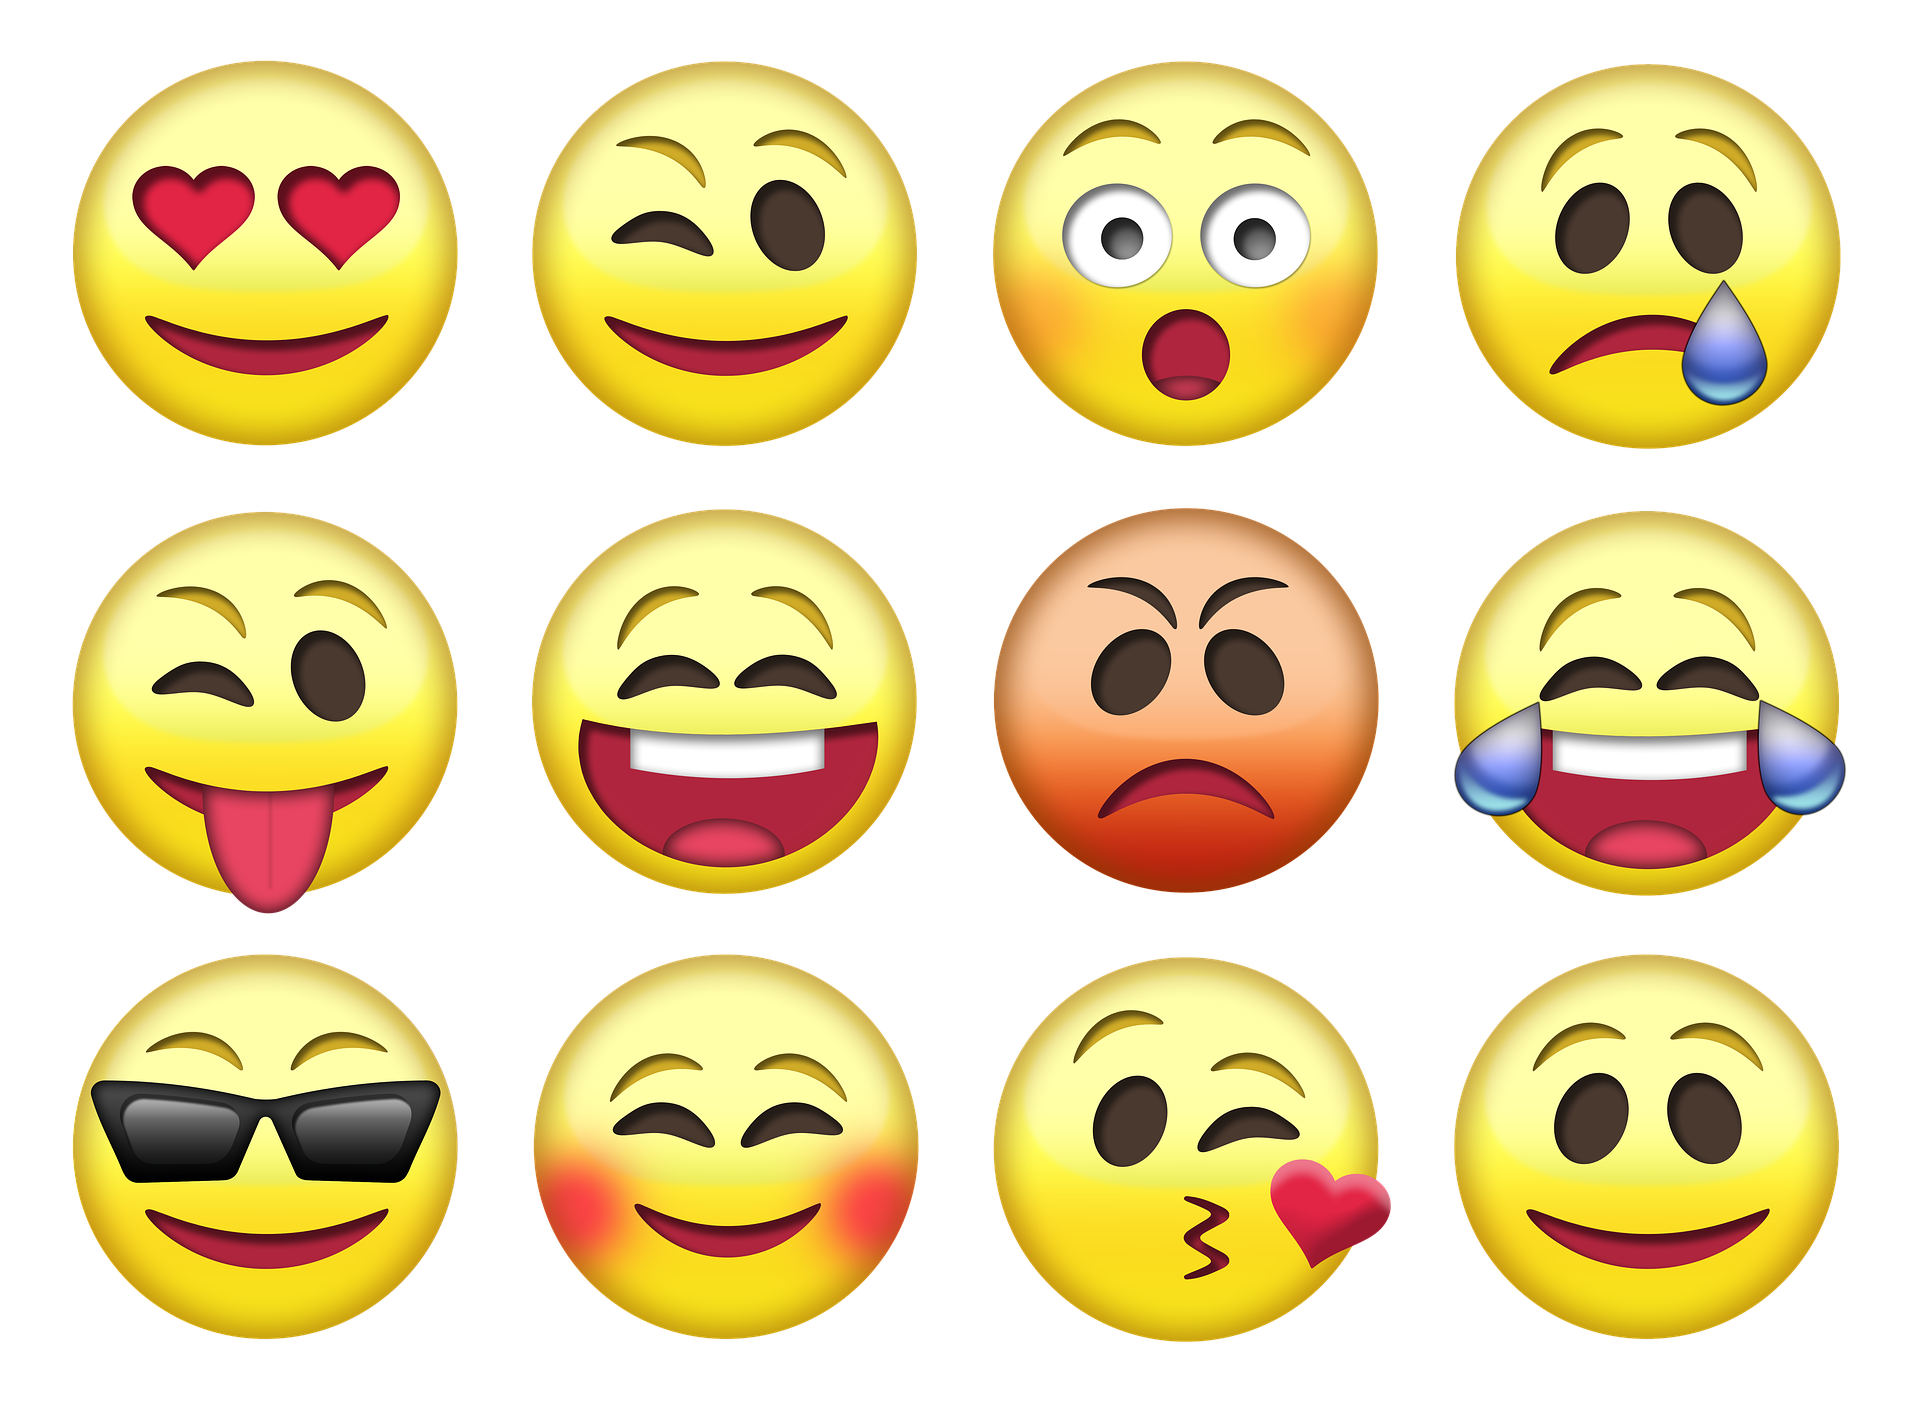 emoji filled mean tweets help scientists create sarcasm detecting